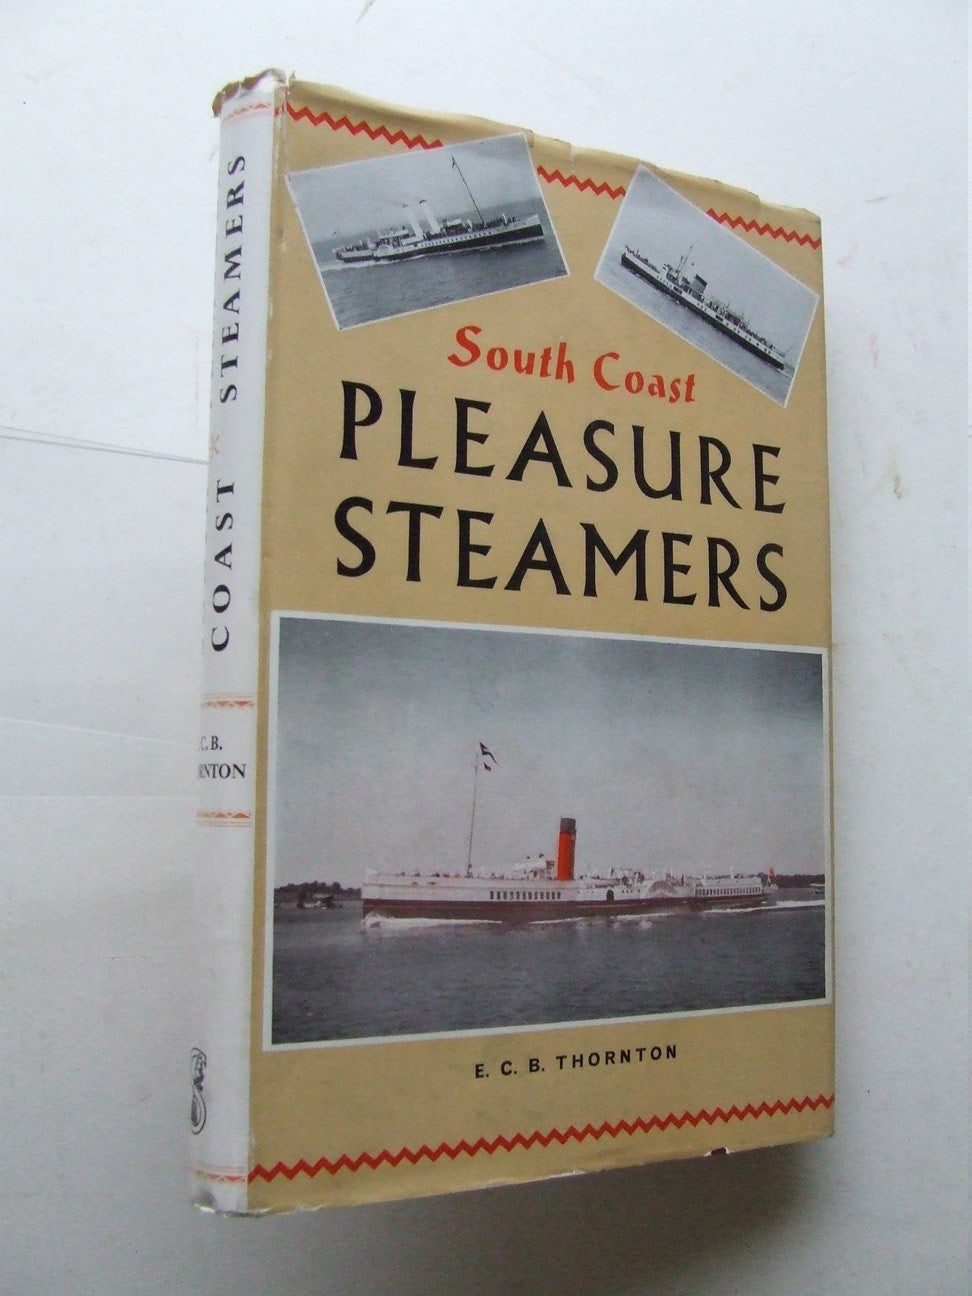 South Coast Pleasure Steamers